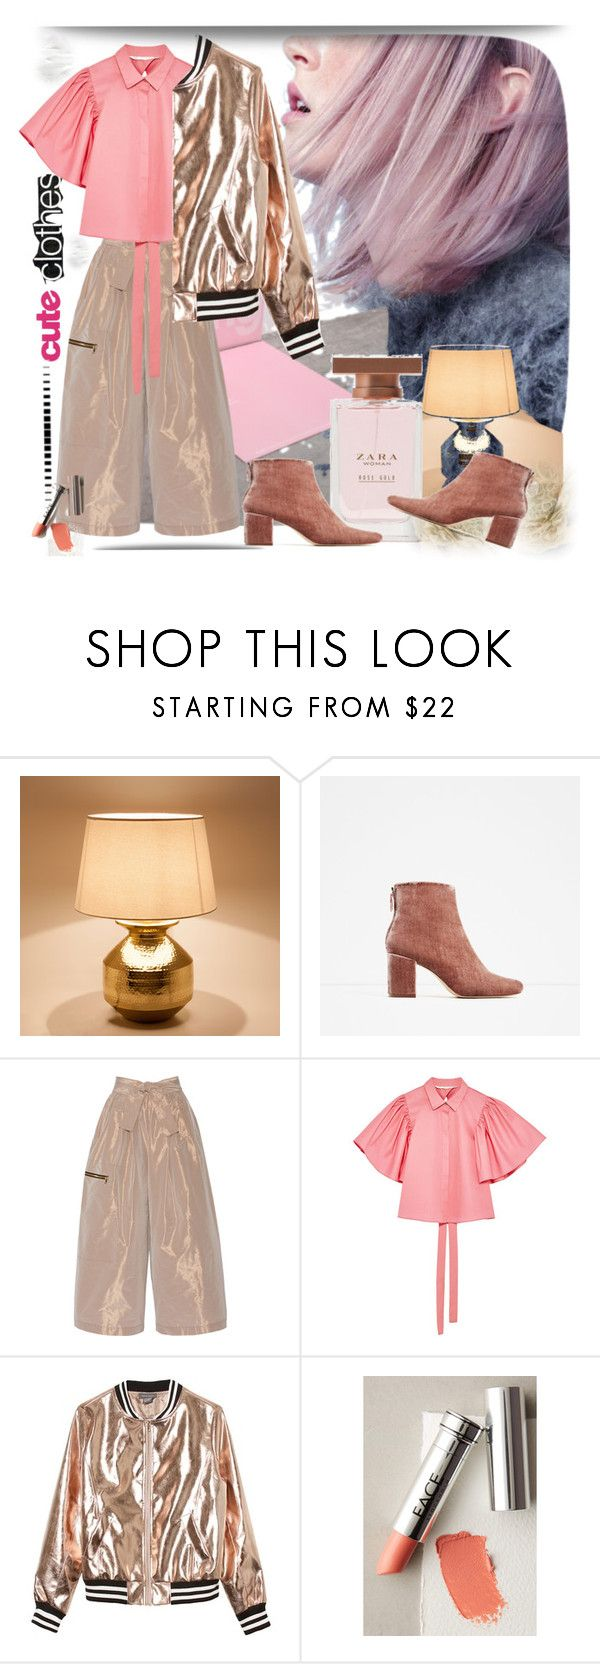 """Untitled #1490"" by hannah353 on Polyvore featuring Zara Home, Tome, Sans Souci, FACE Stockholm and J Brand"